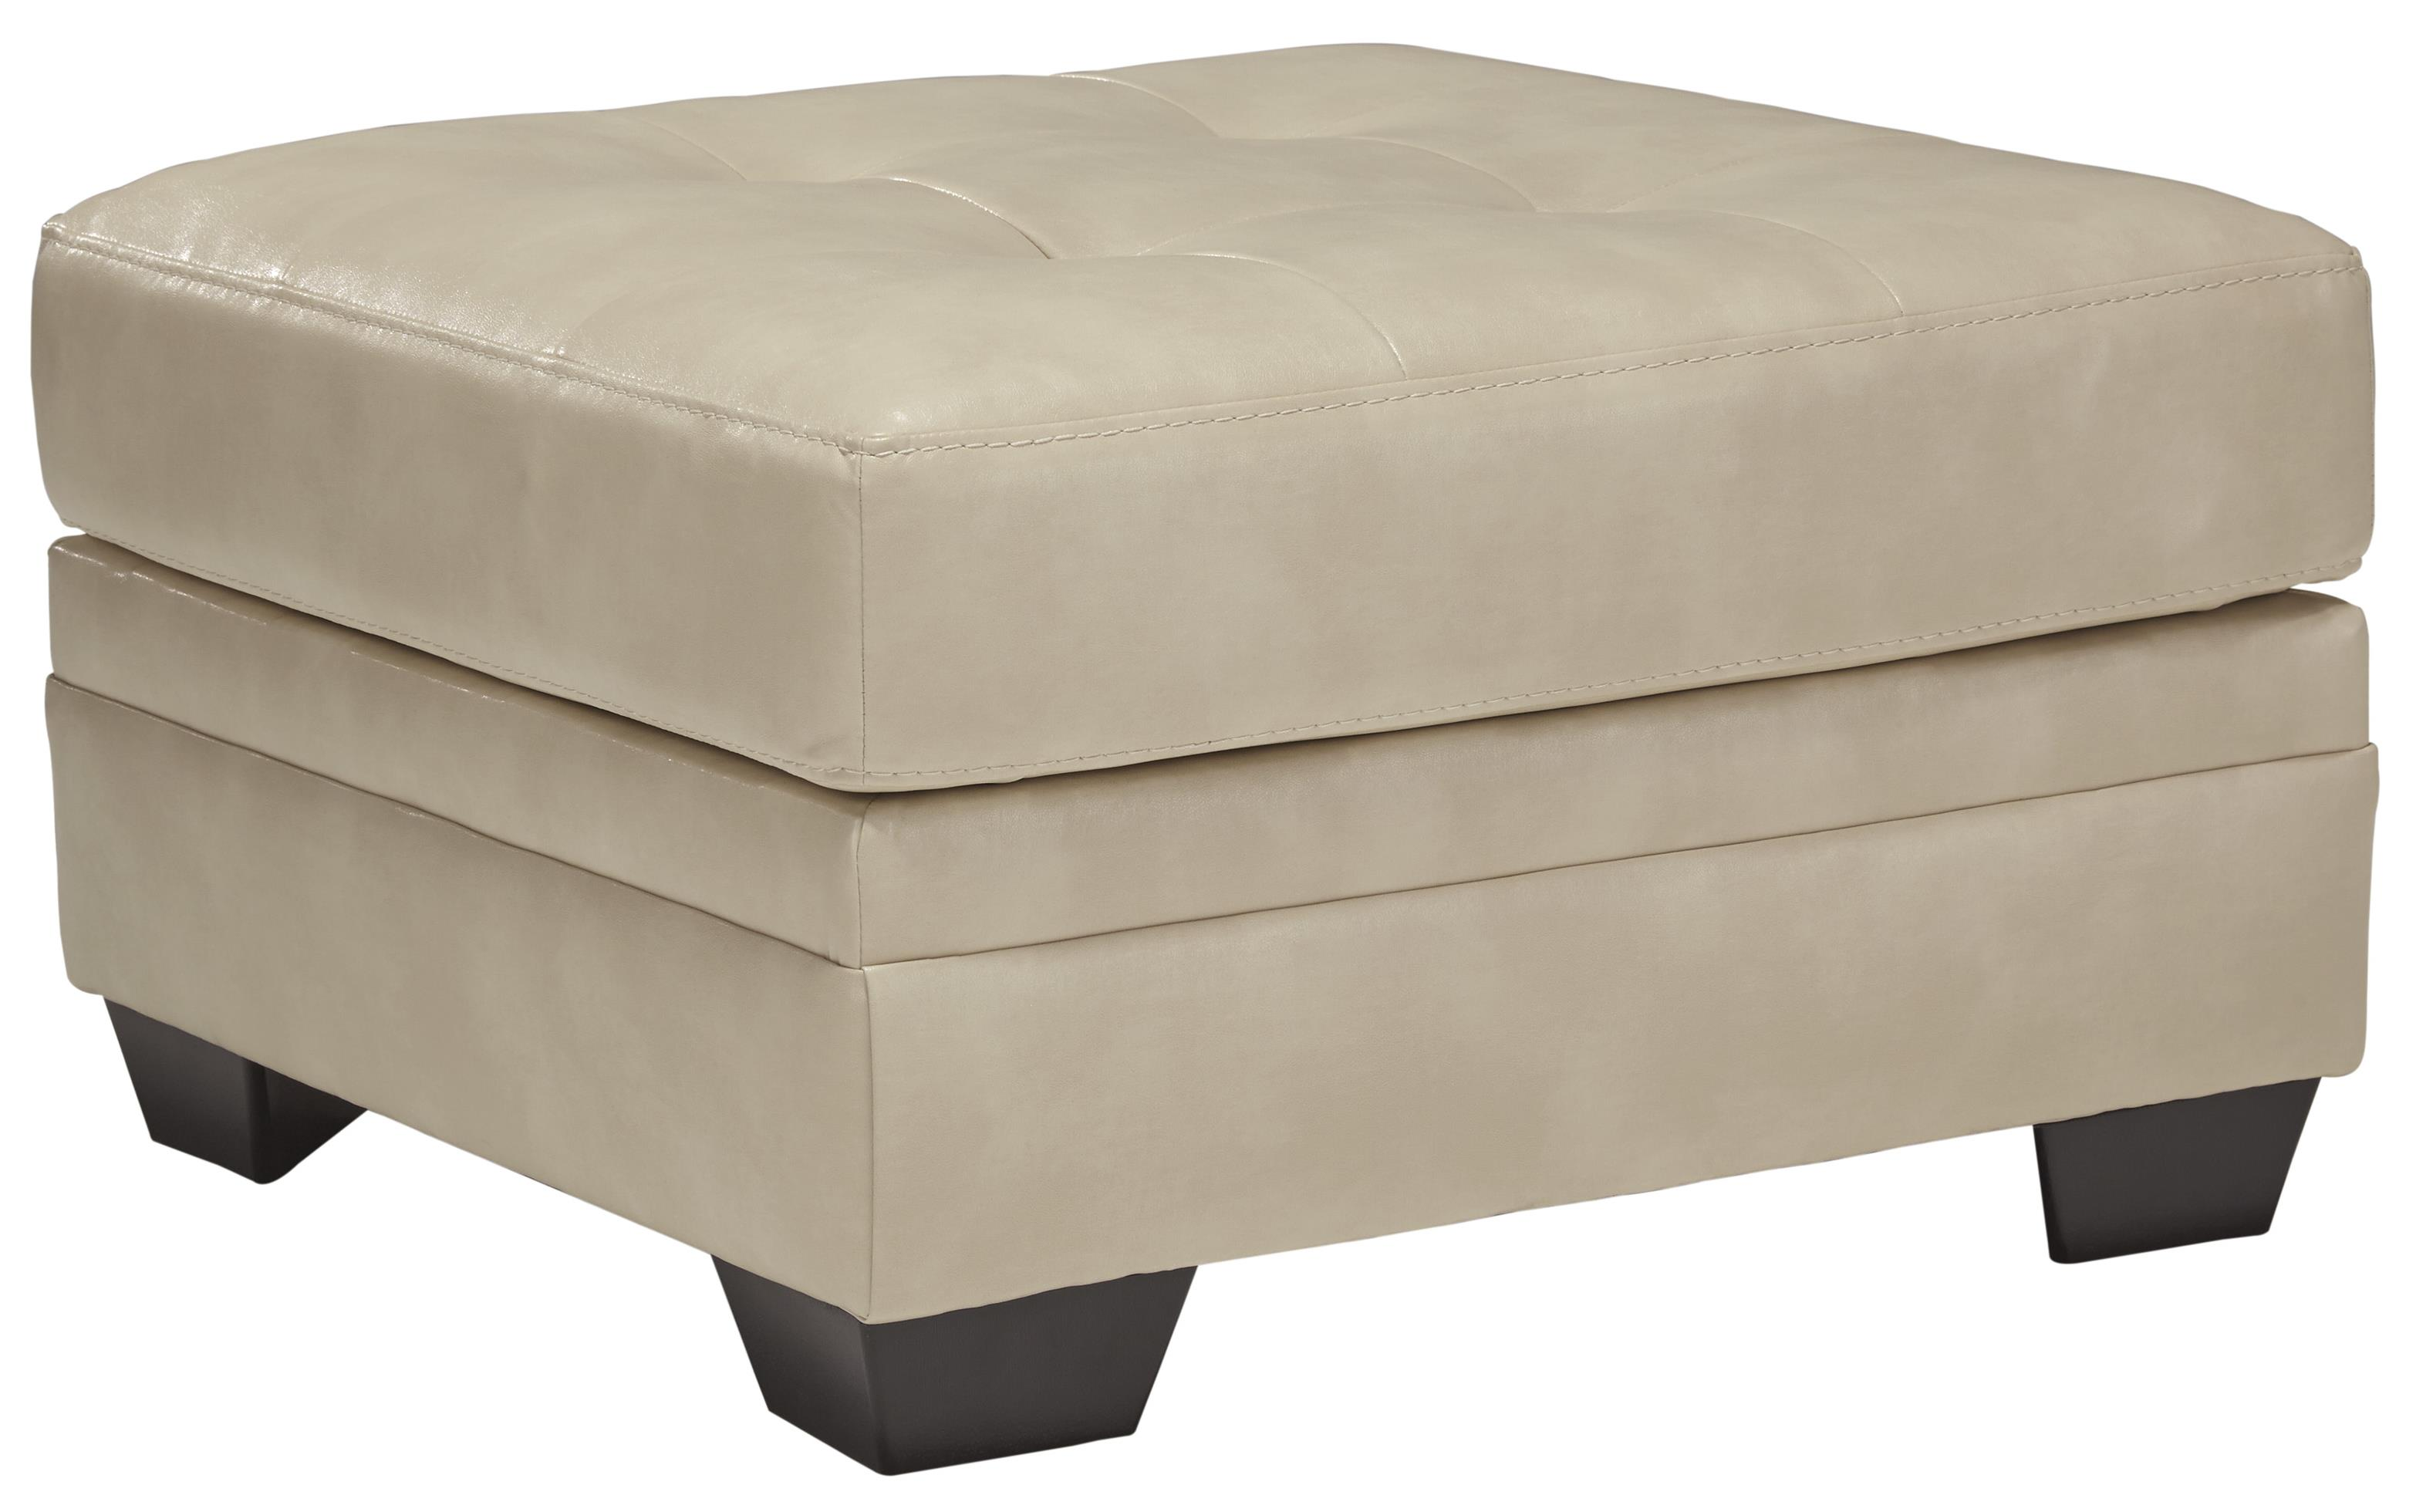 Signature Design by Ashley Khalil DuraBlend® Oversized Accent Ottoman - Item Number: 6180408